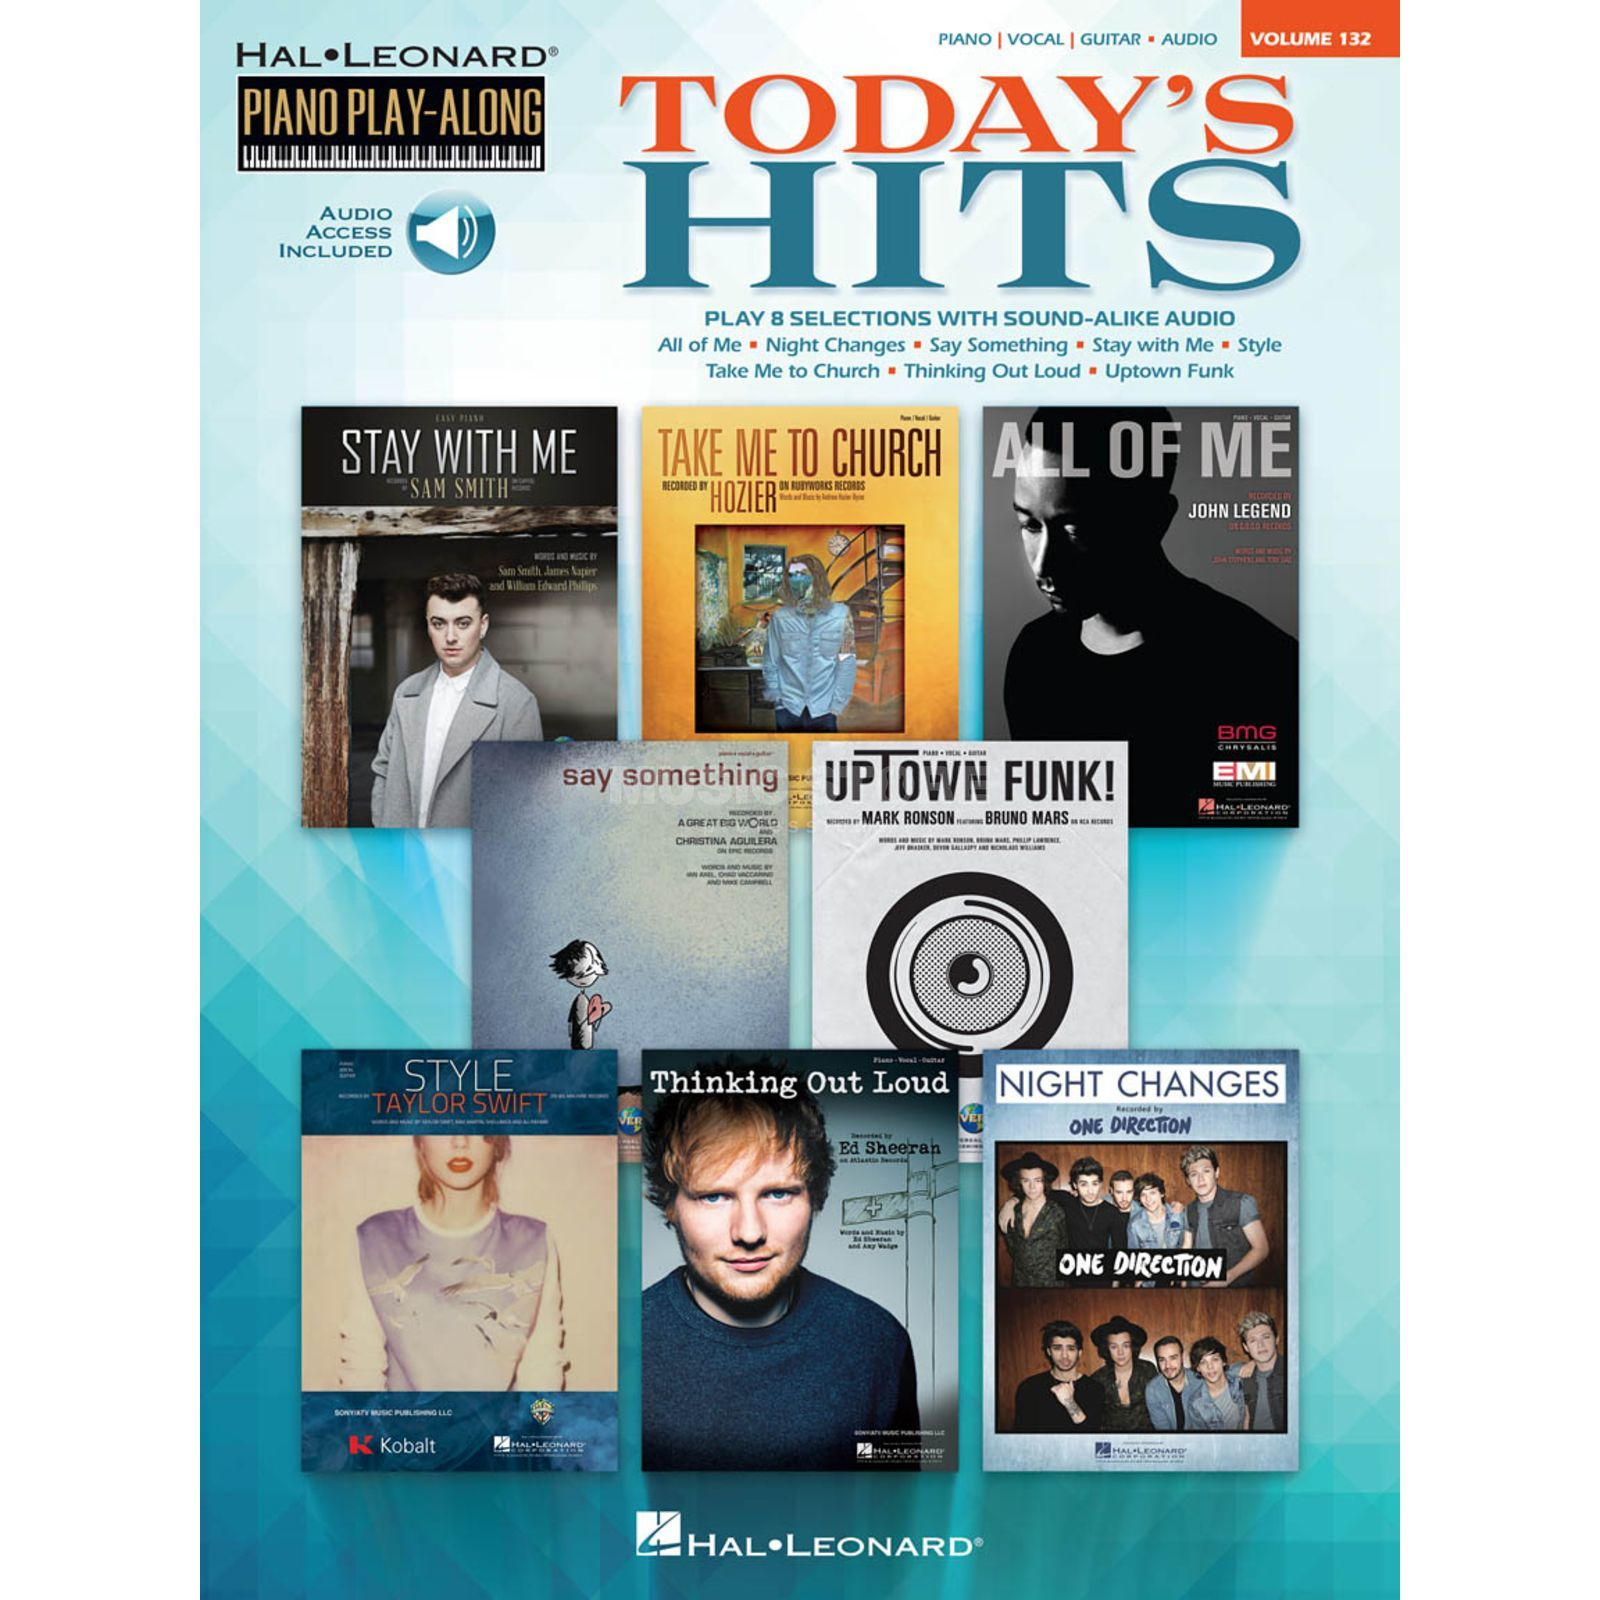 Hal Leonard Piano Play-Along: Today's Hits Vol. 132, PVG Produktbild